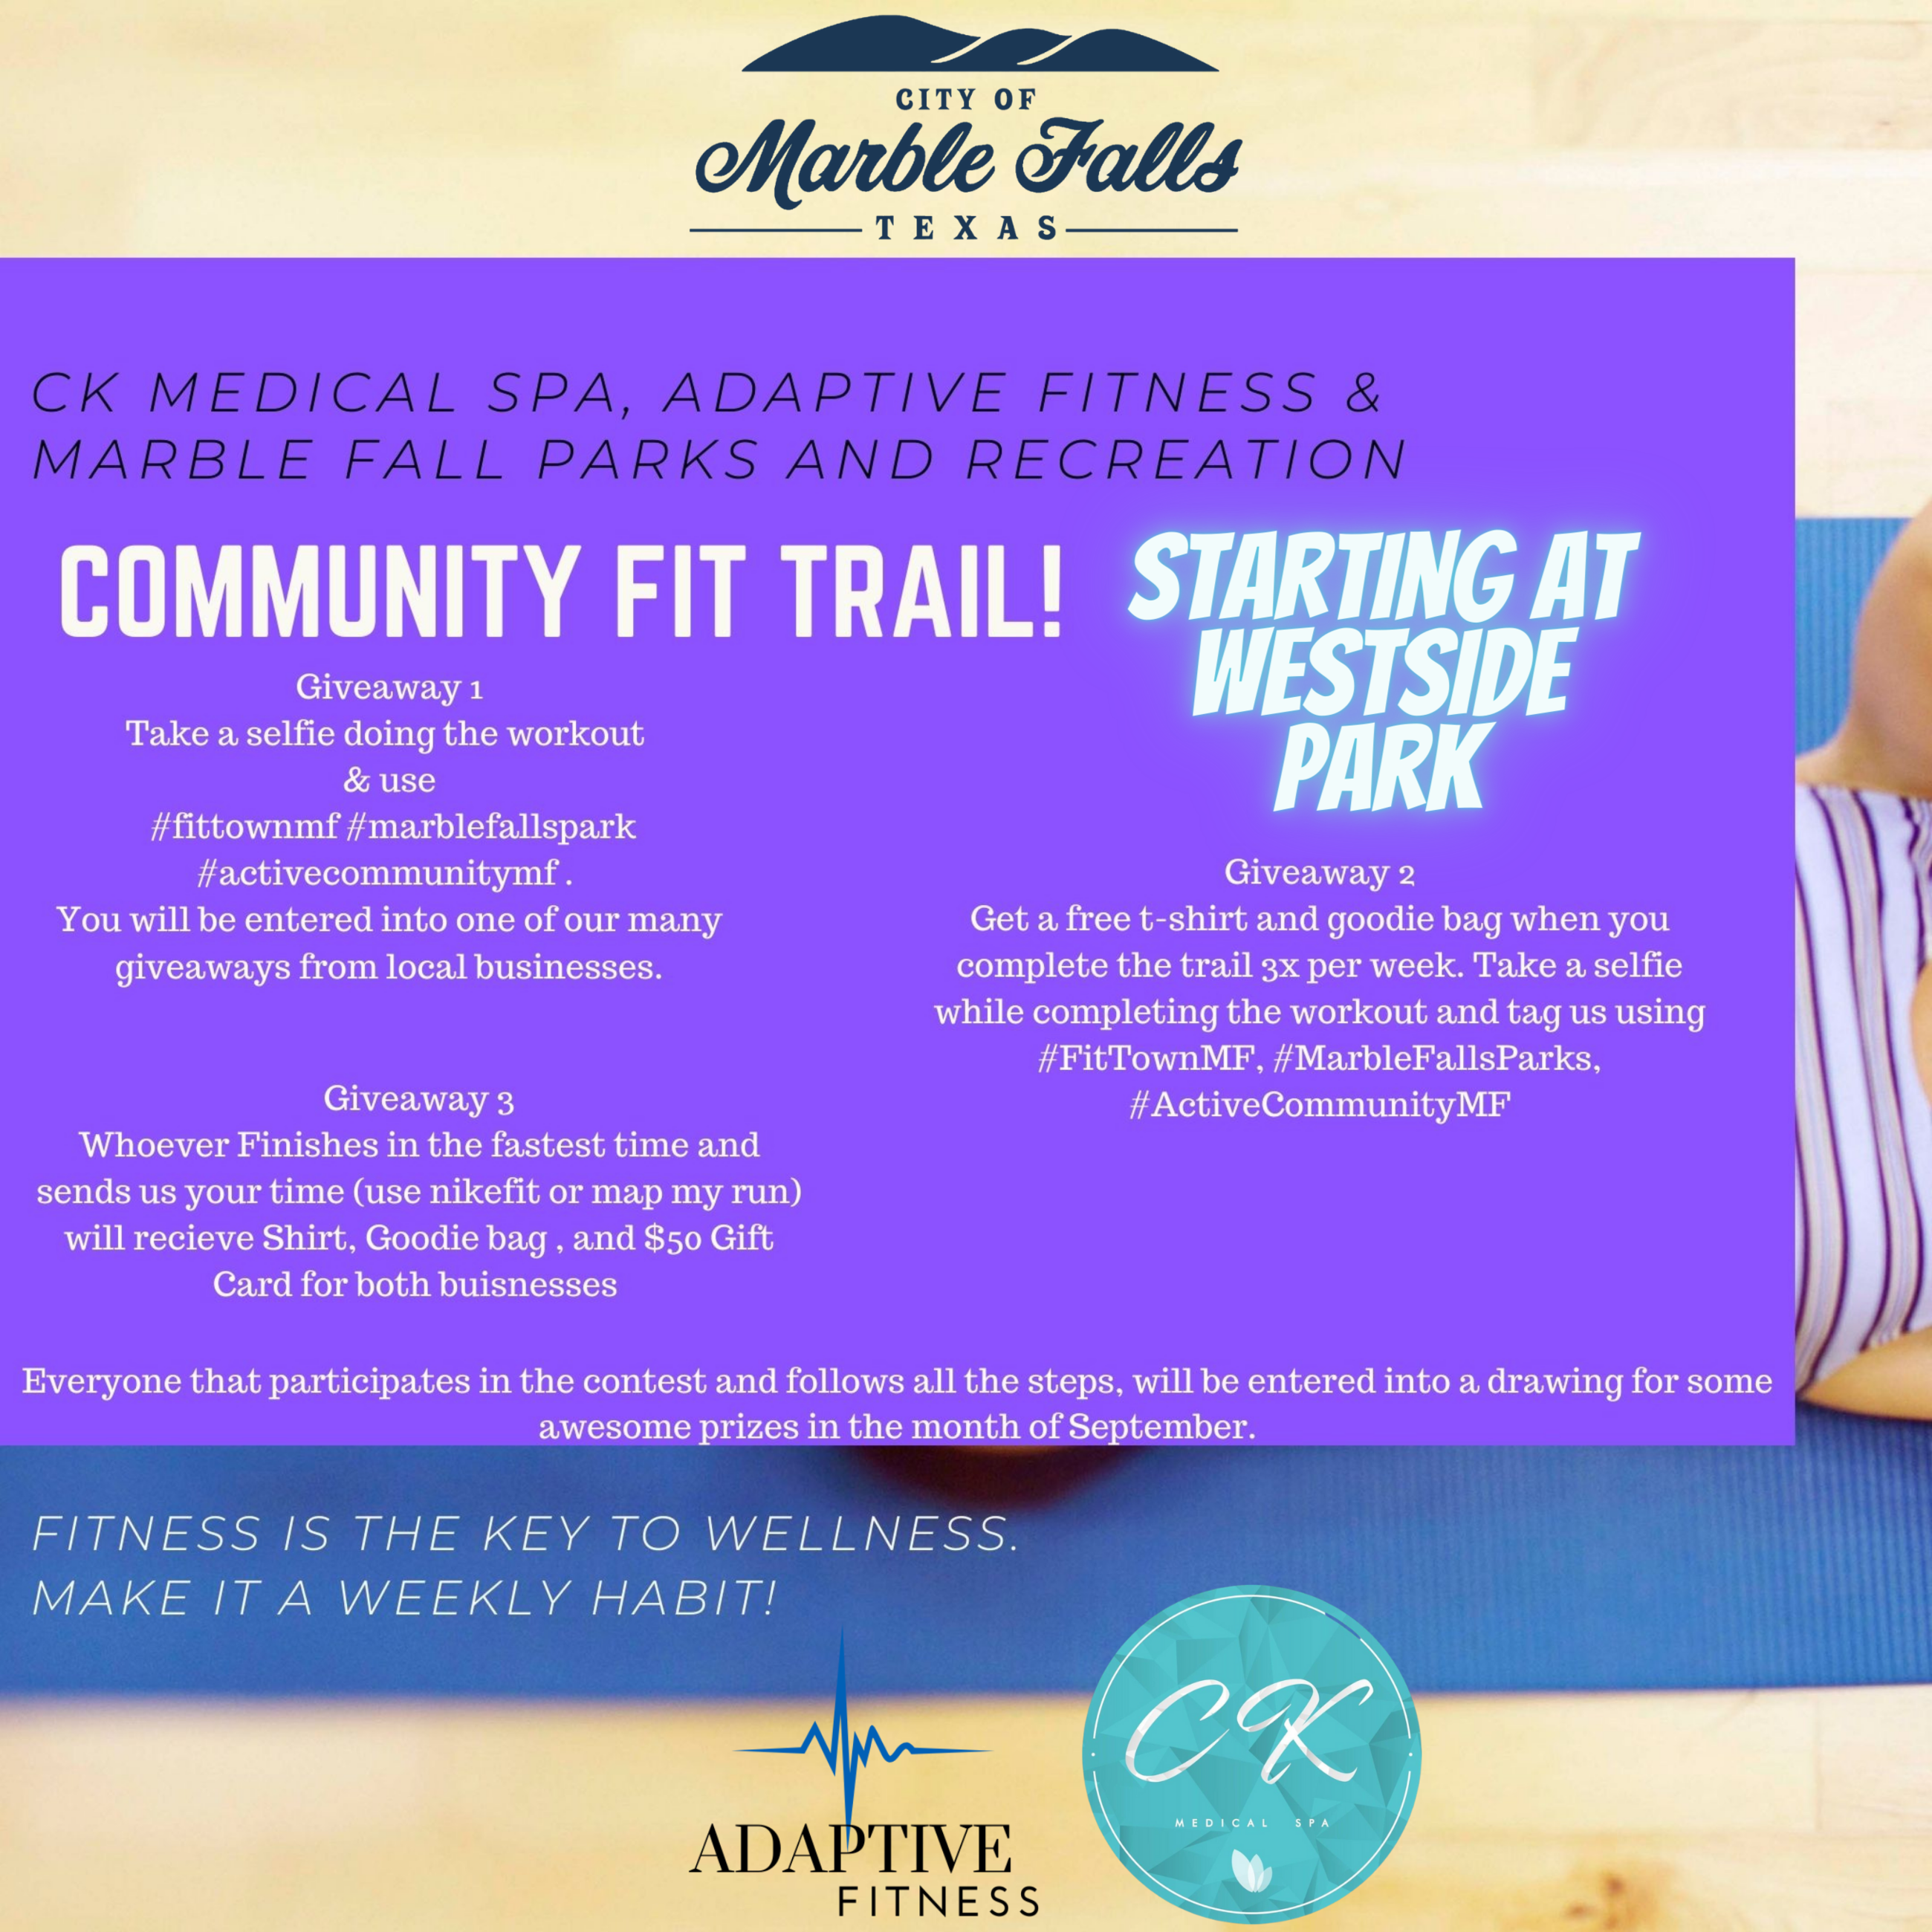 Community Fit Trail